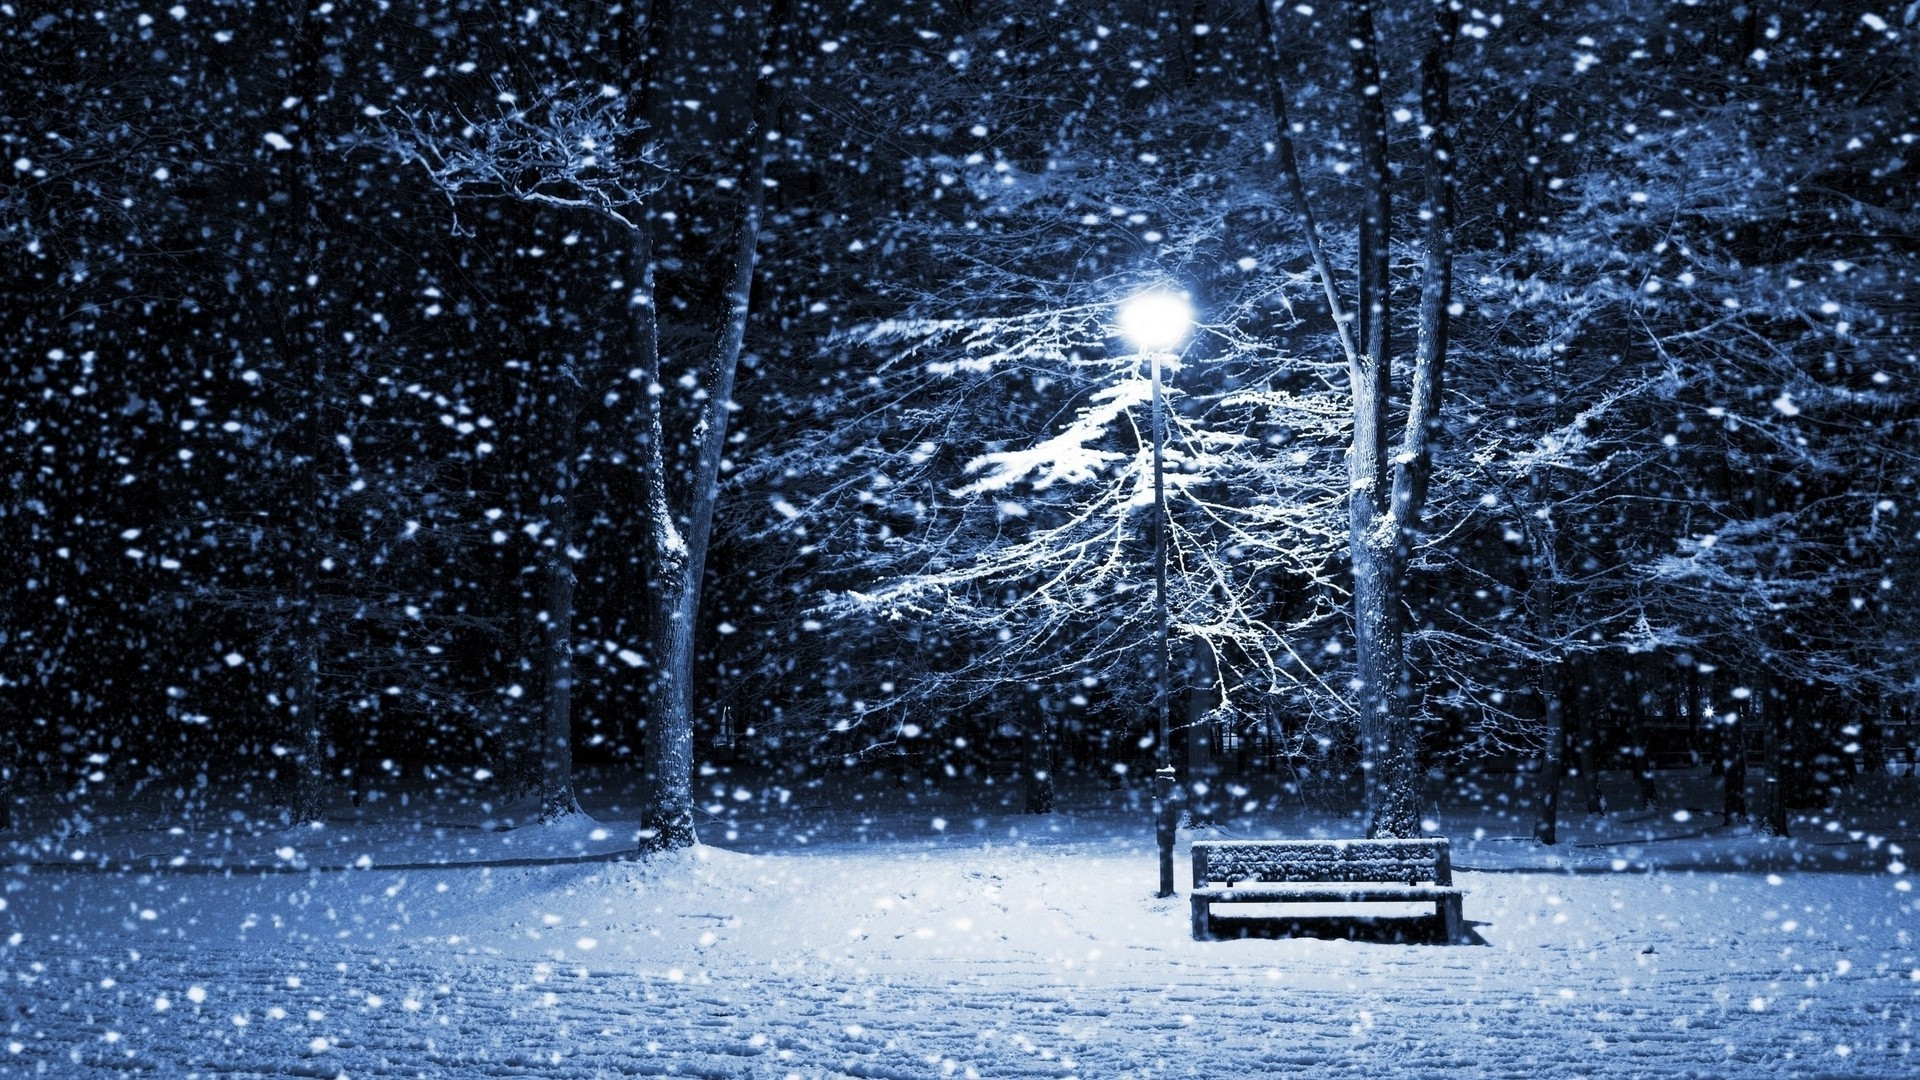 1920x1080 trees night snow winter lantern ice cold frost Freezing weather season   px